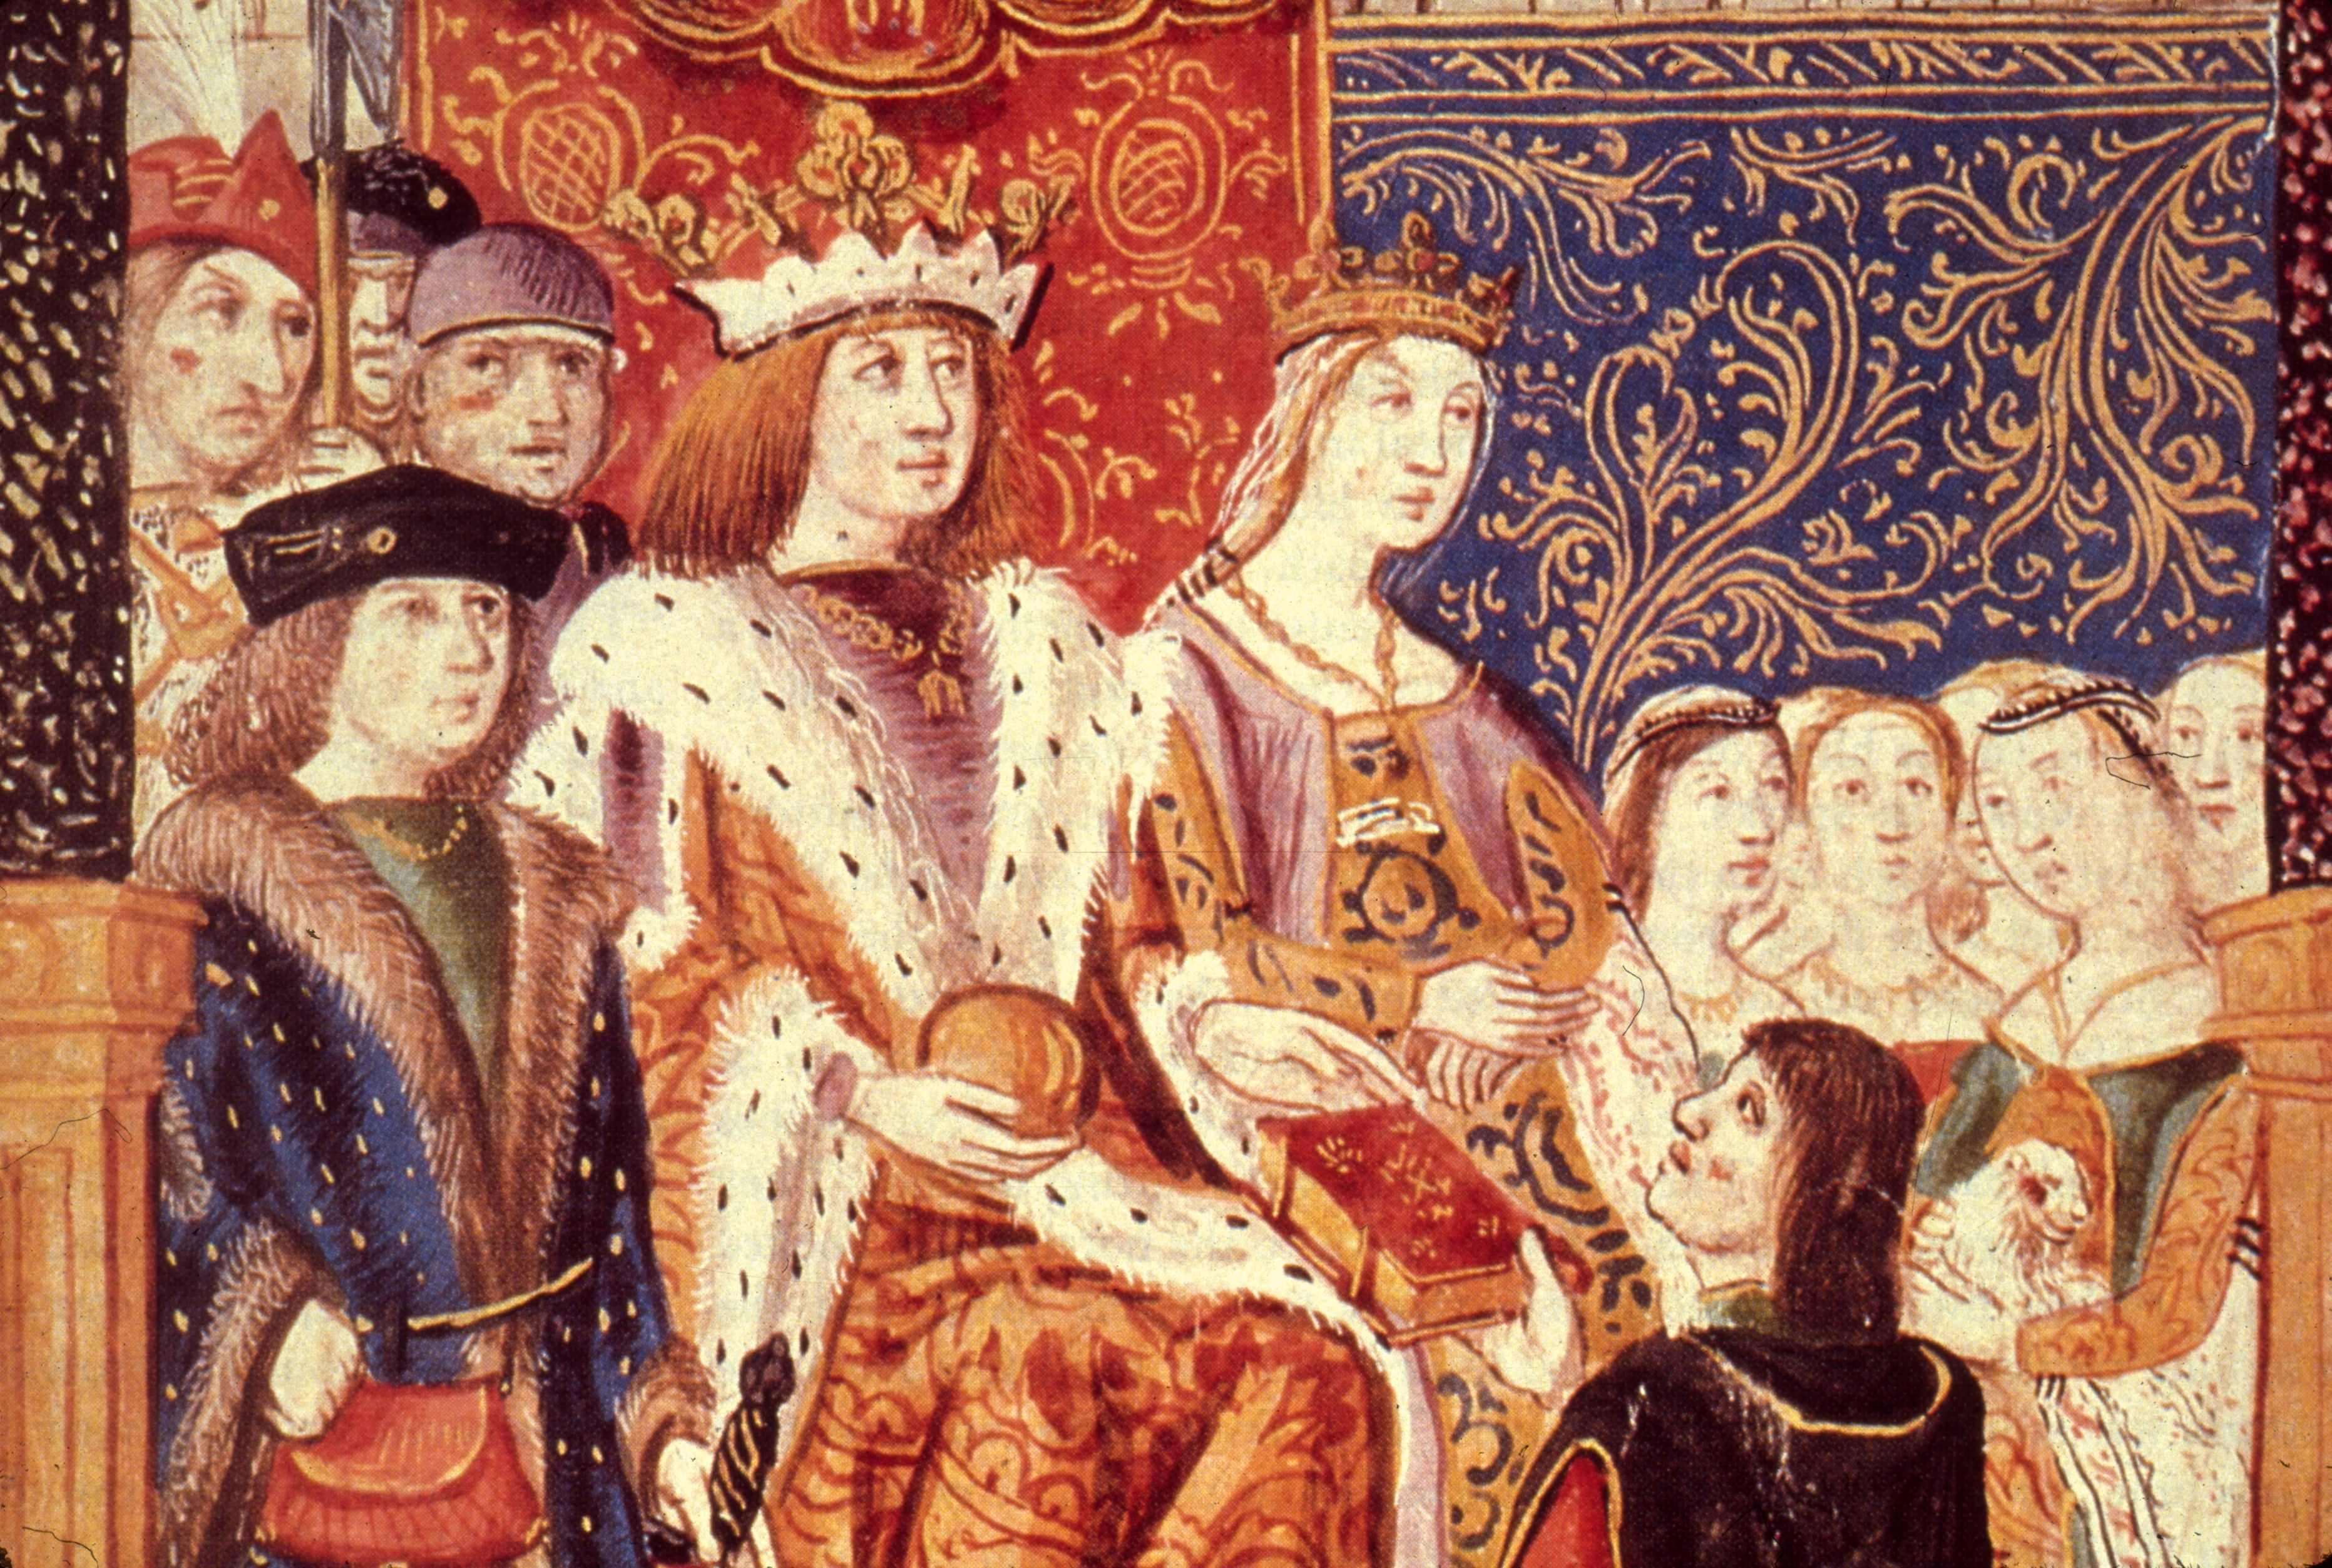 Ferdinand and Isabella amongst their people.